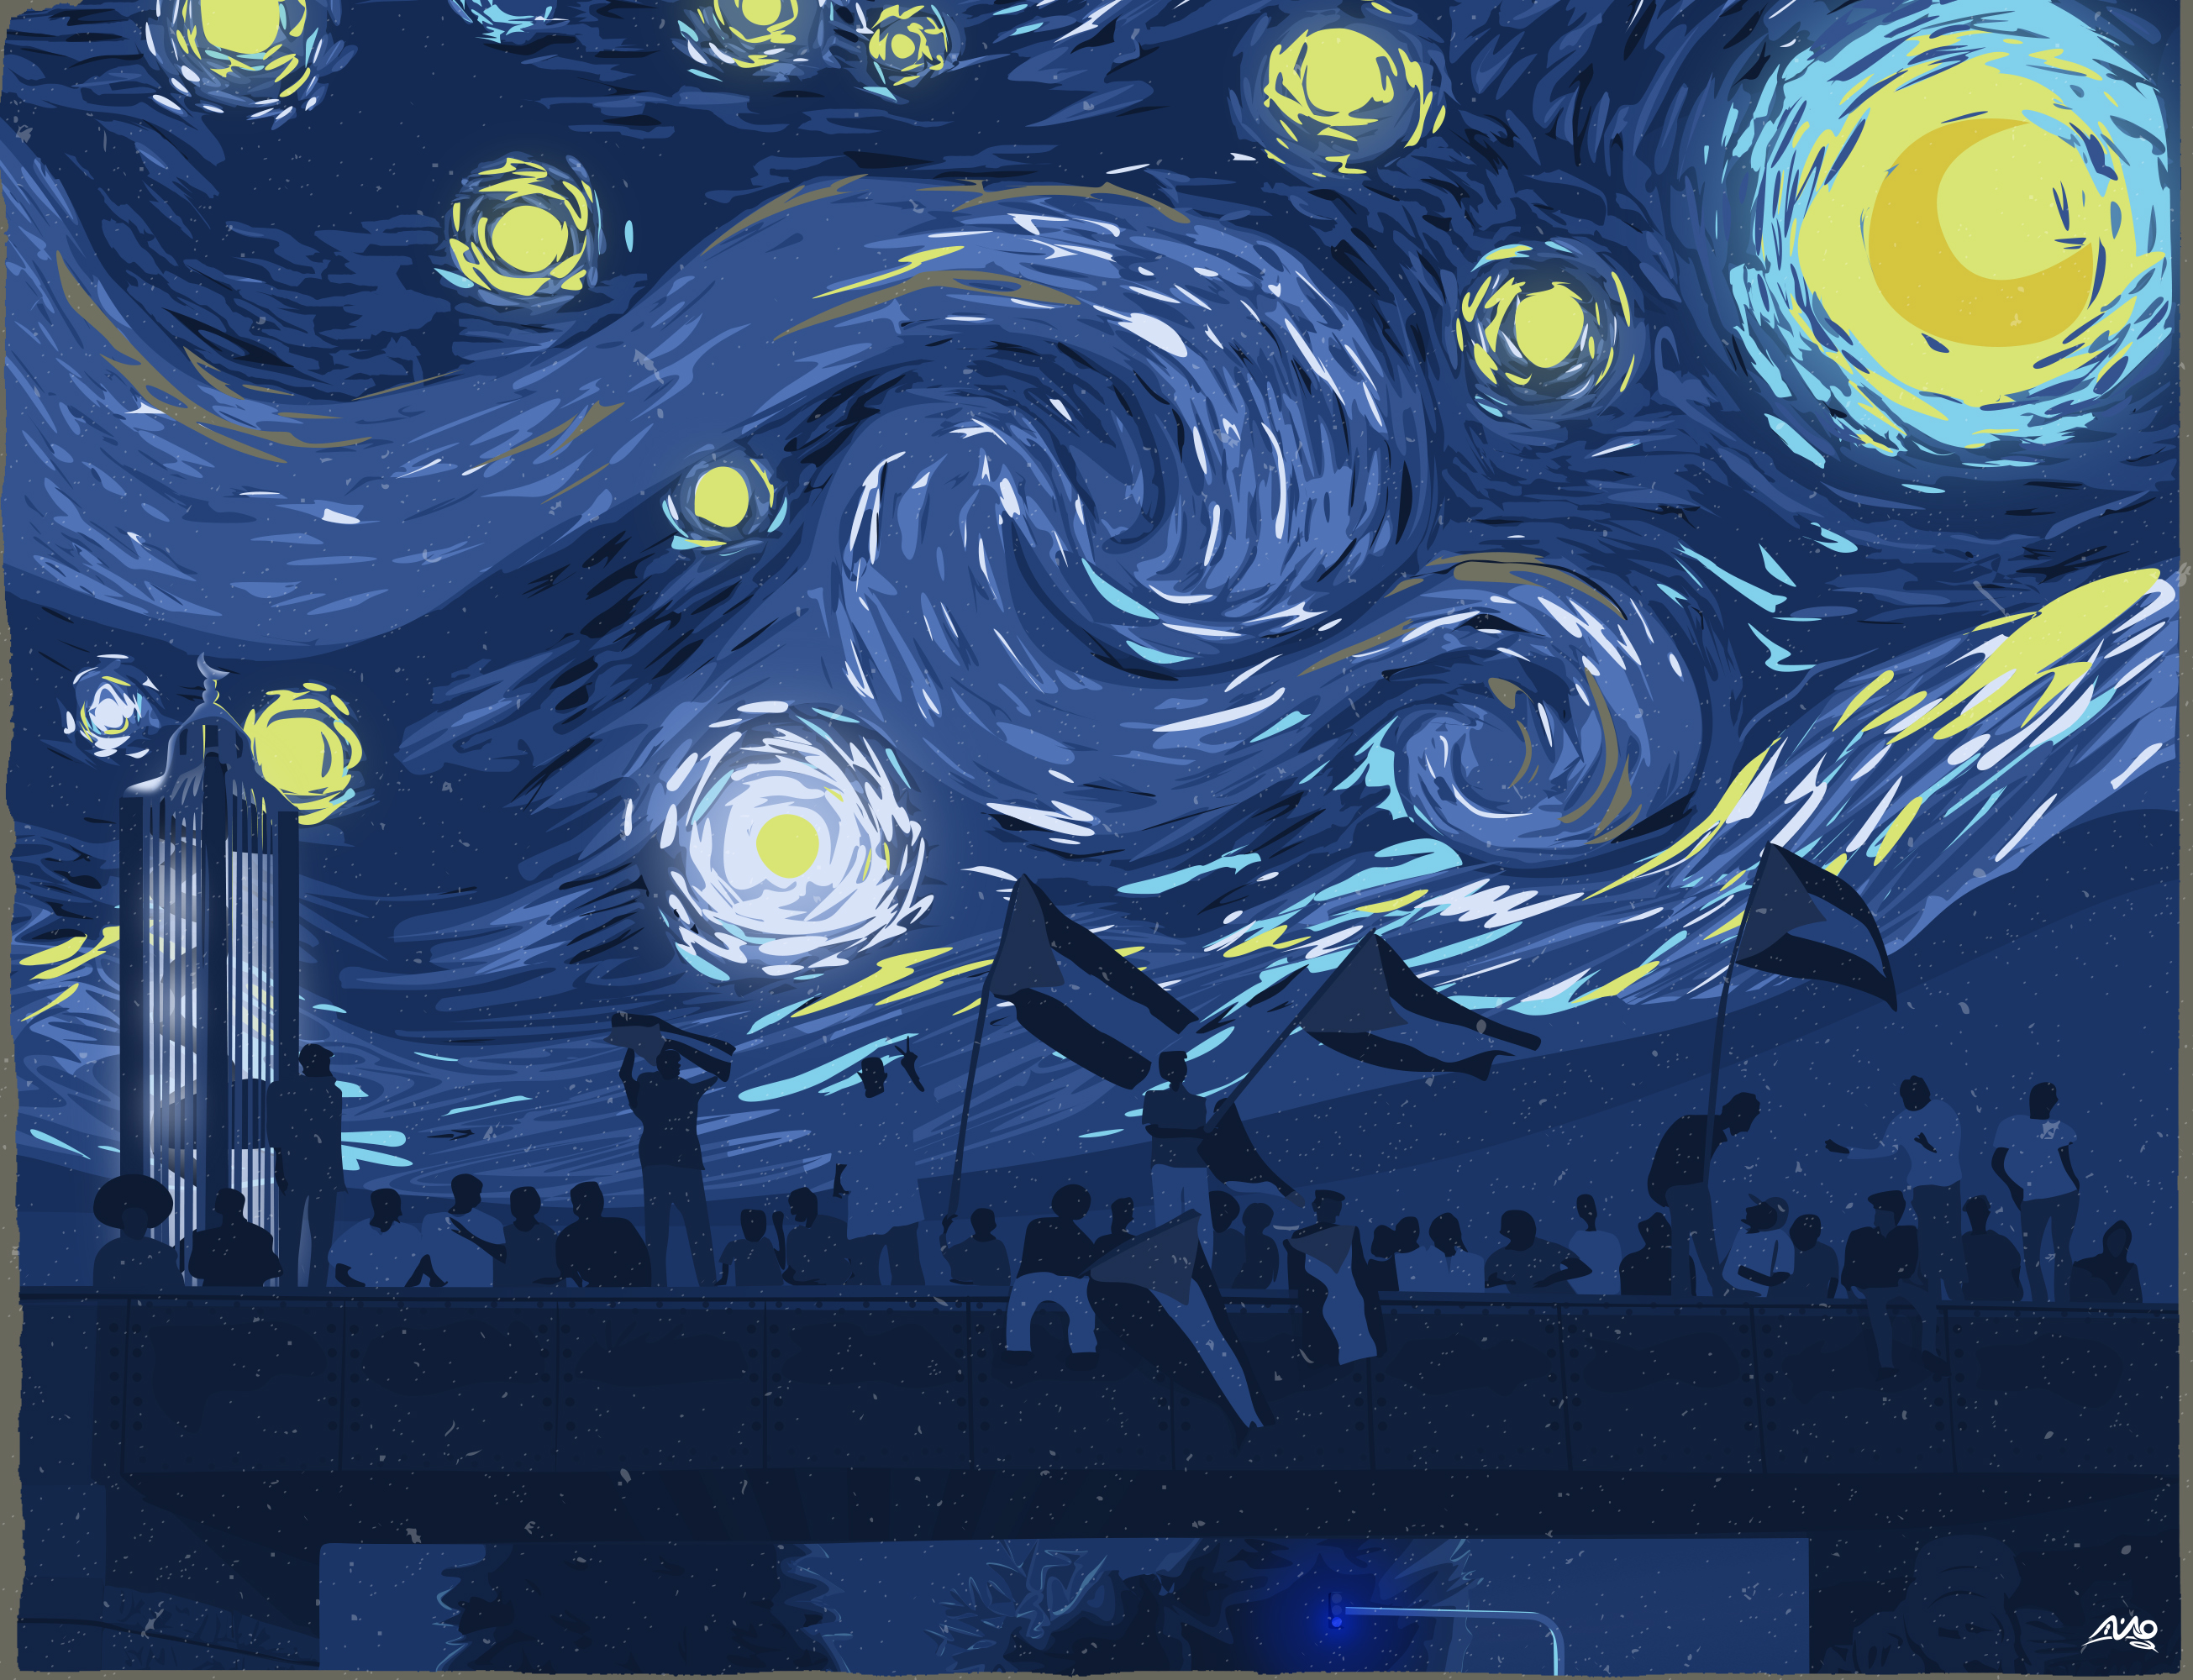 Mounir Khalil Blue Night - Sudanese protesters overlayed with Van Gogh's Starry Night